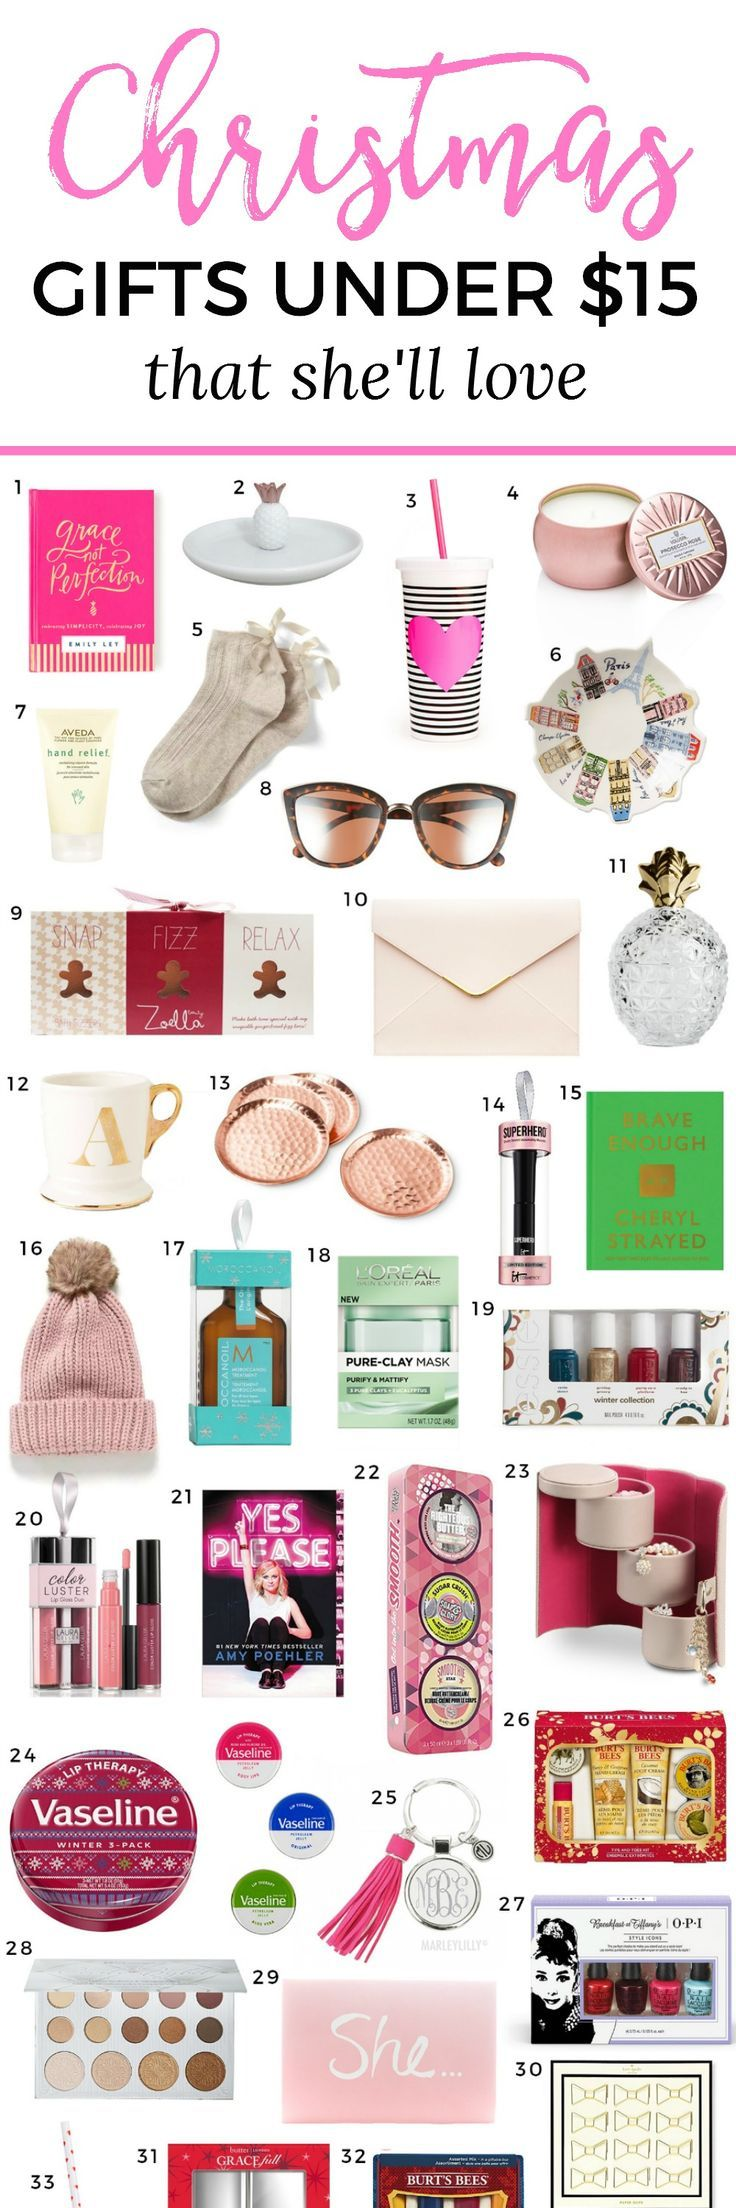 the best christmas gift ideas for women under $15 | gifts for women